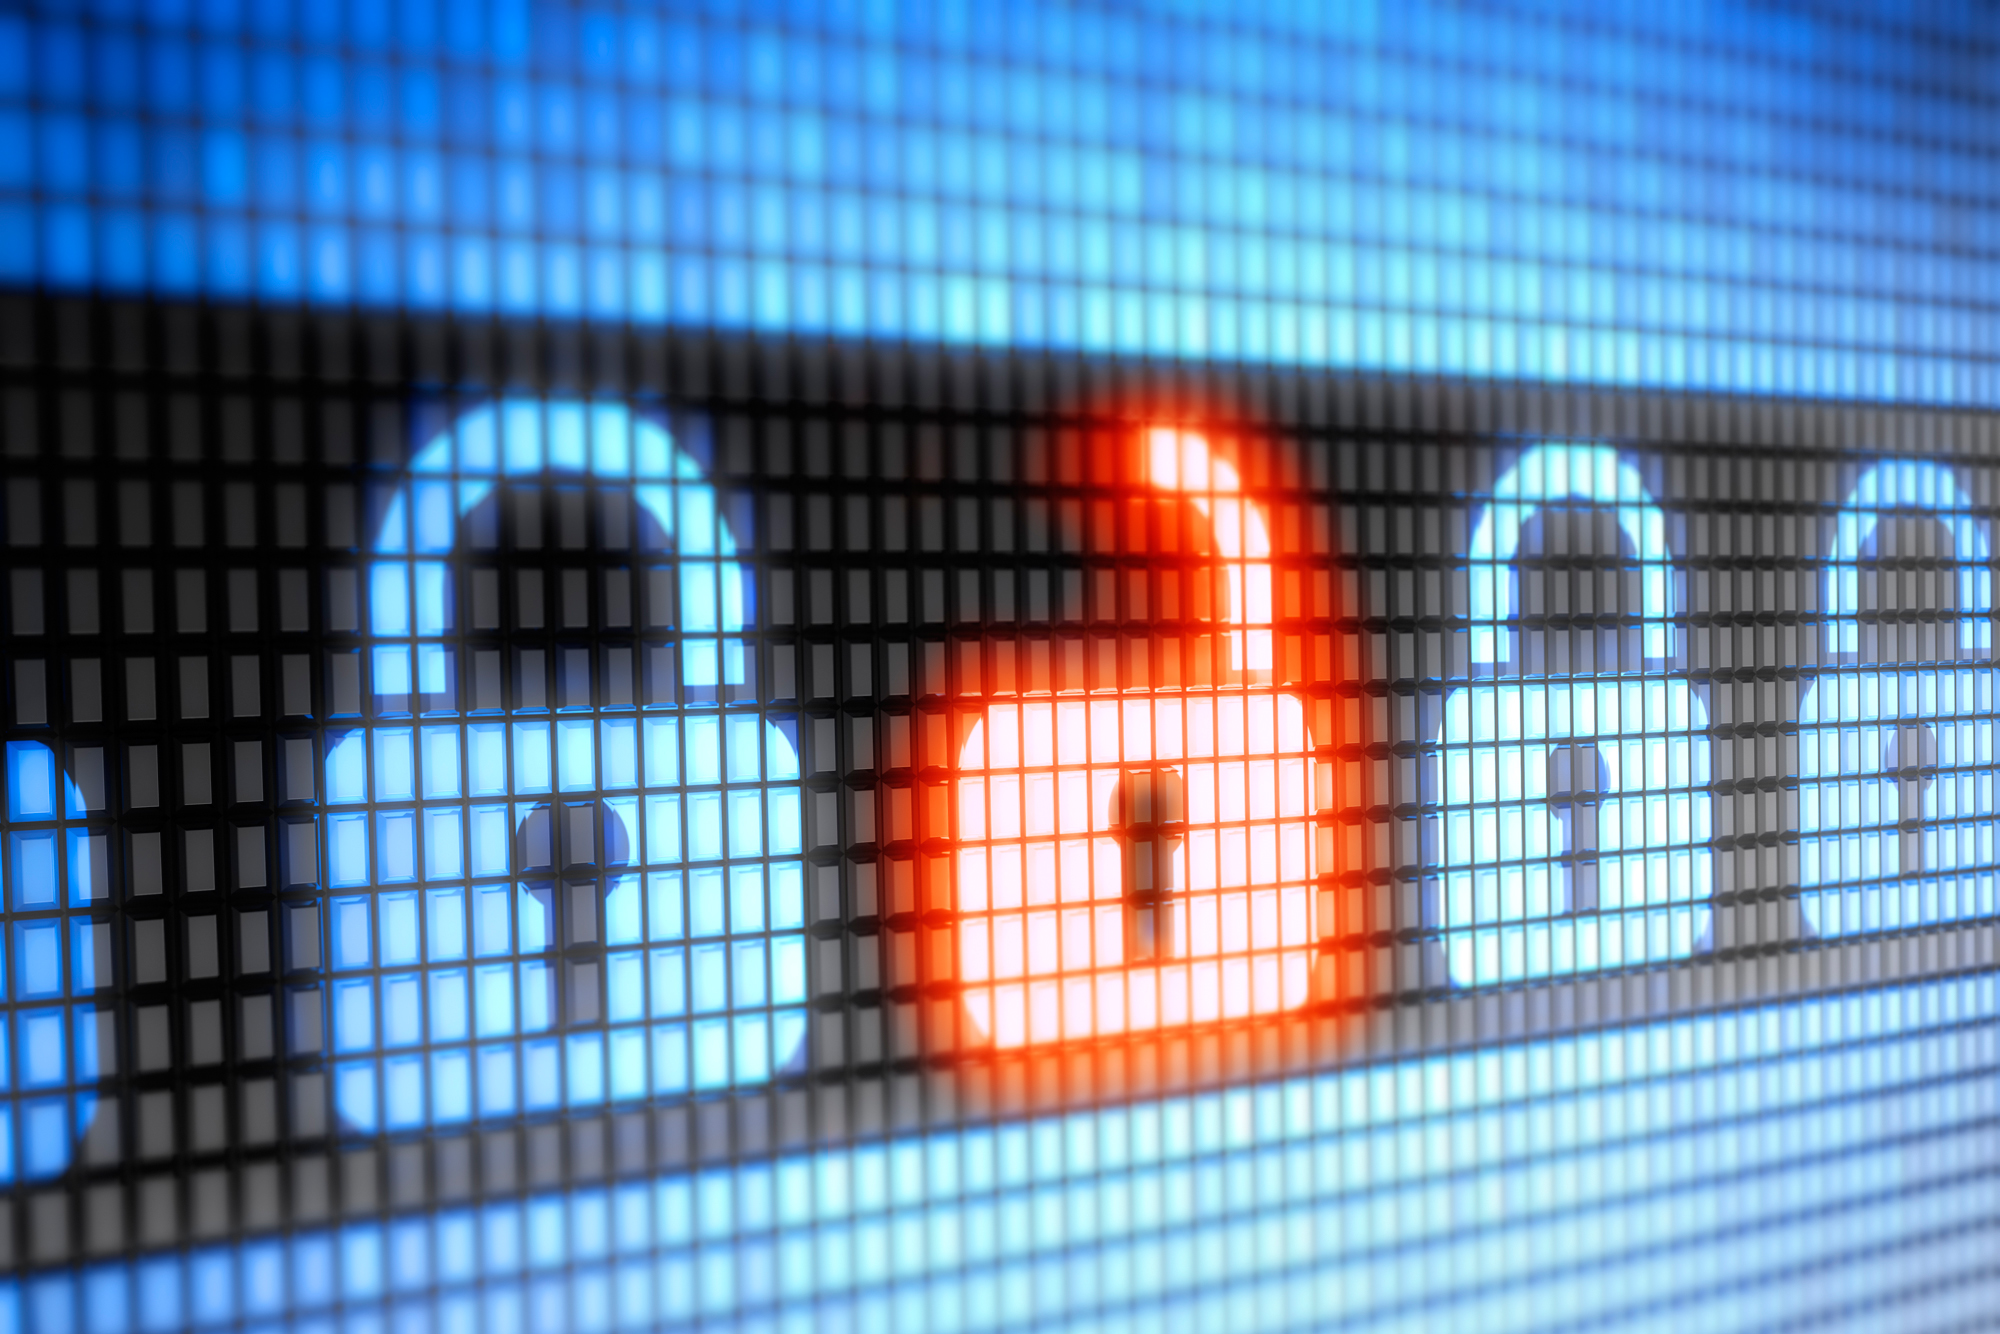 Are you and your company protected from data breaches, phishing, or malware? Understanding the risks of stolen credentials